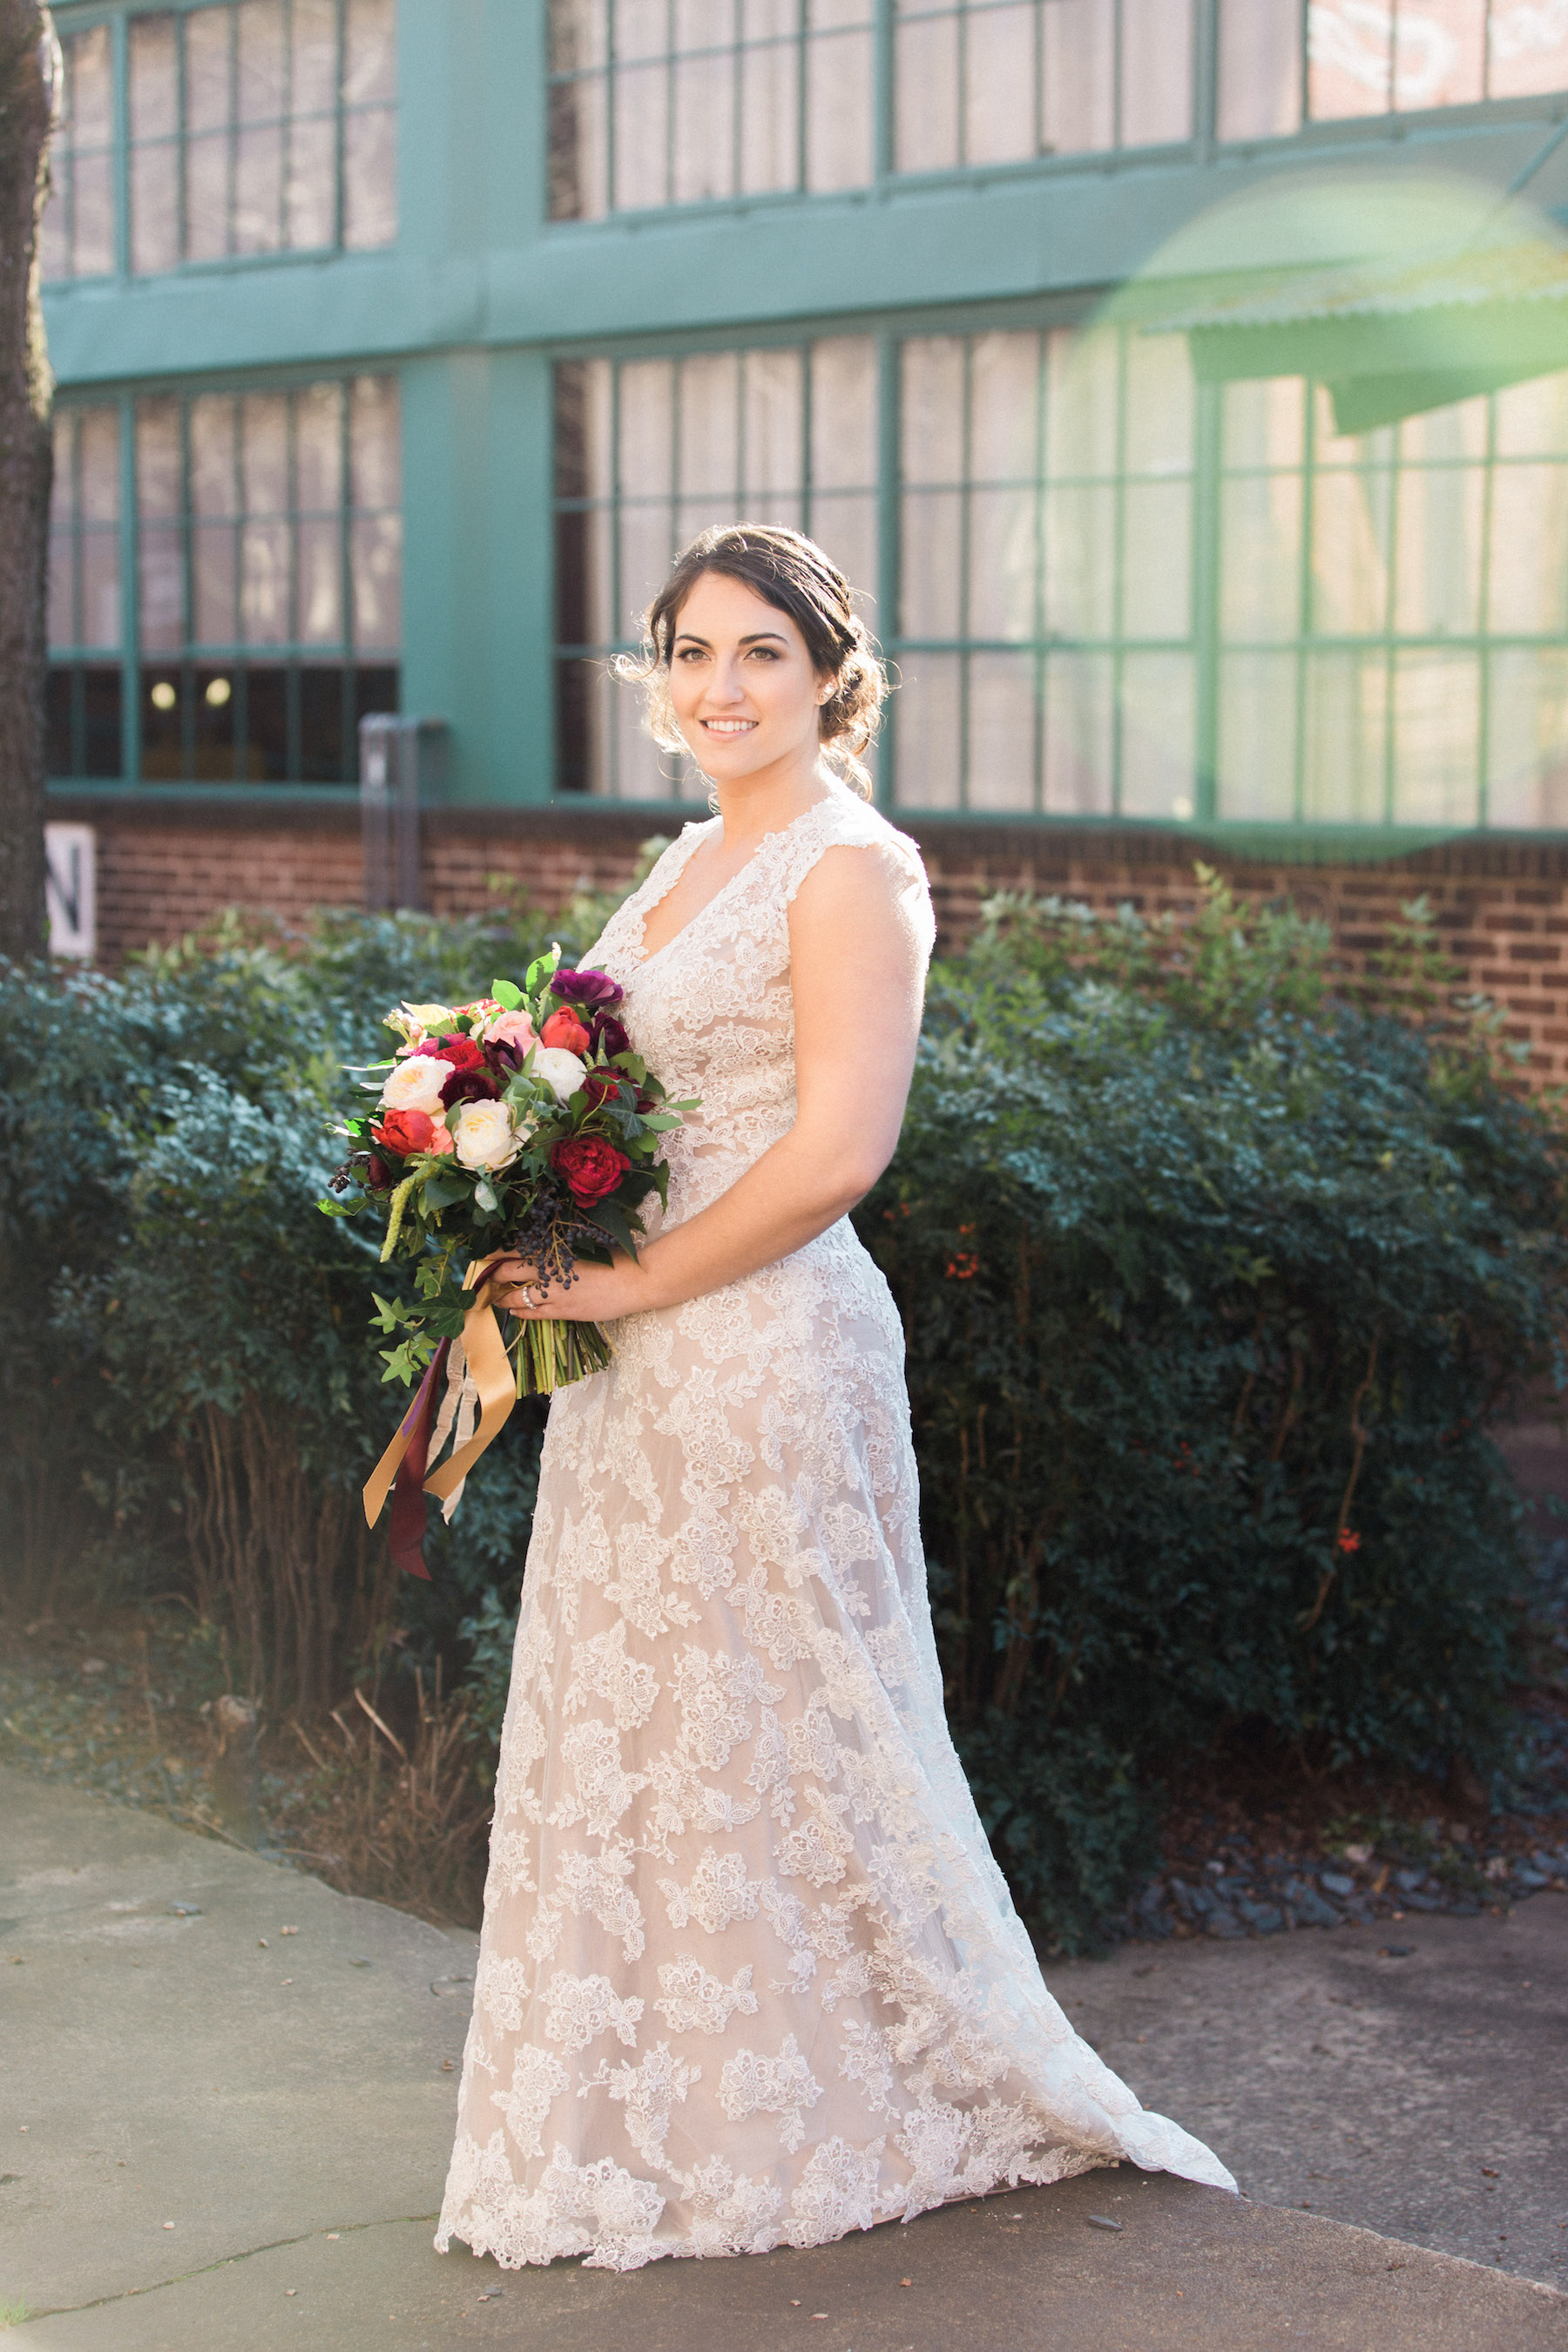 urban-style-garden-jewish-wedding-nashville-mylife-photography-04